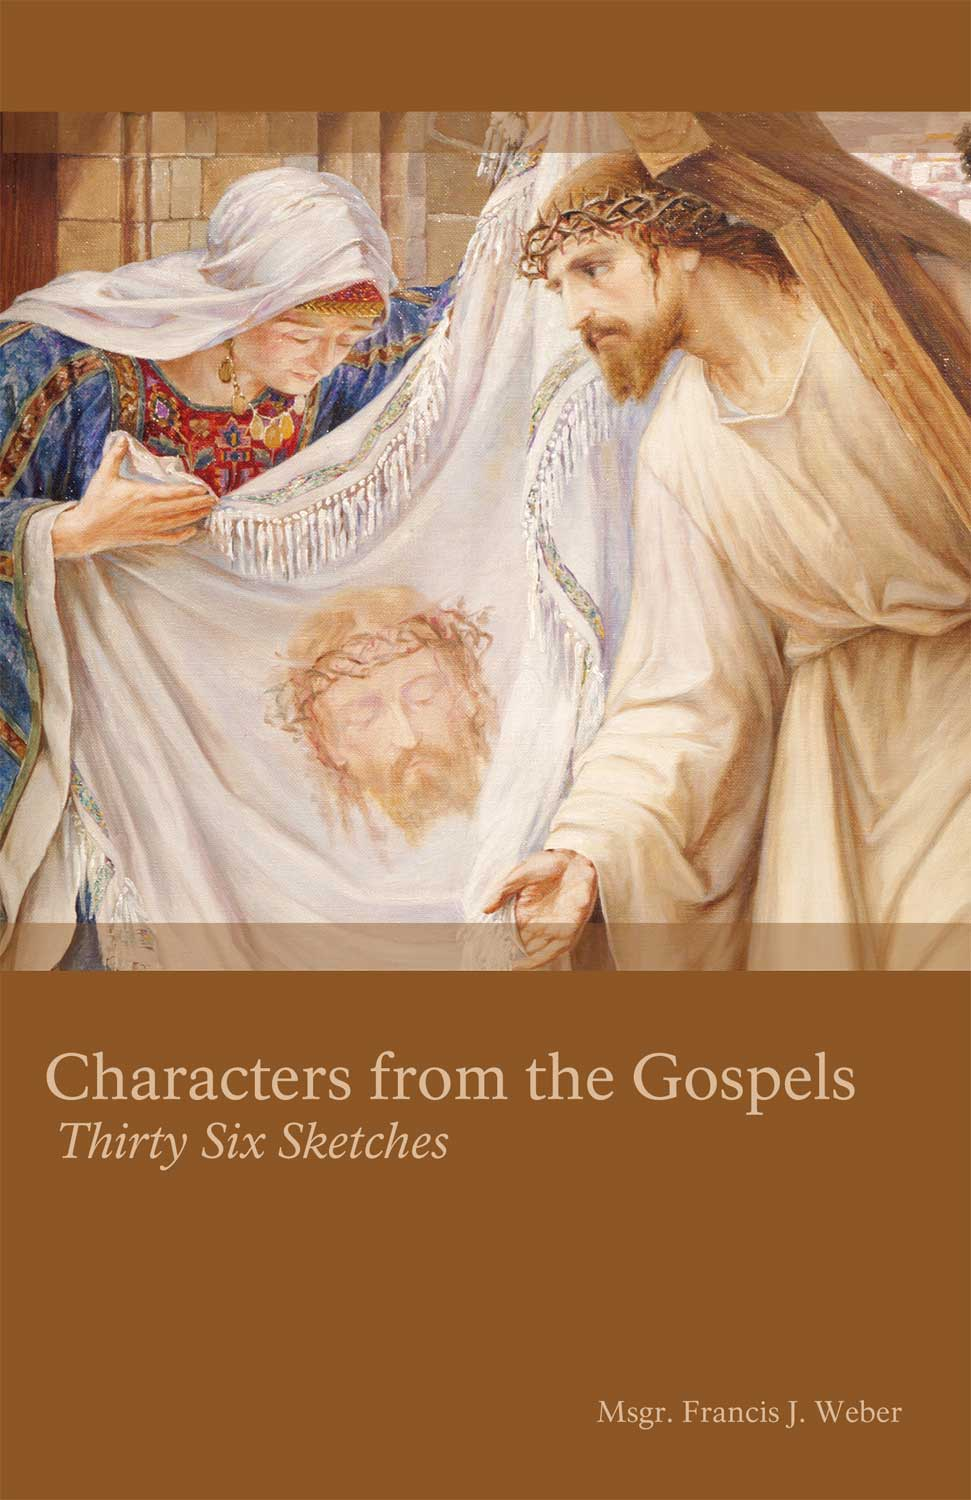 Characters from the gospels thirty six sketches e book ebook characters from the gospels thirty six sketches fandeluxe Choice Image